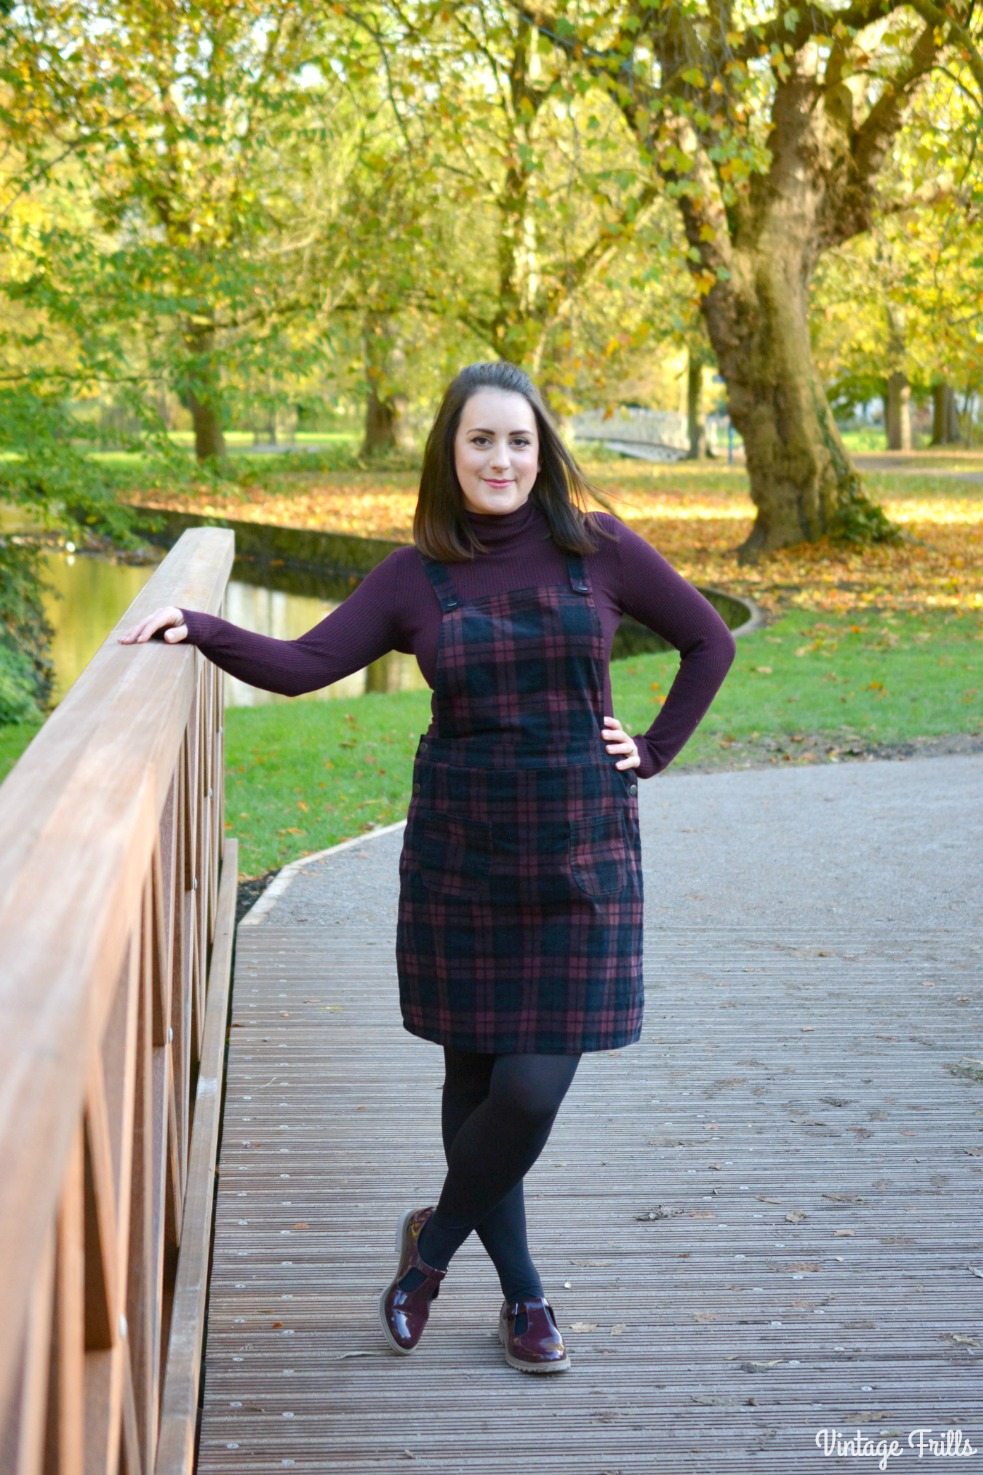 sainsburys-tartan-dungaree-dress-ootd